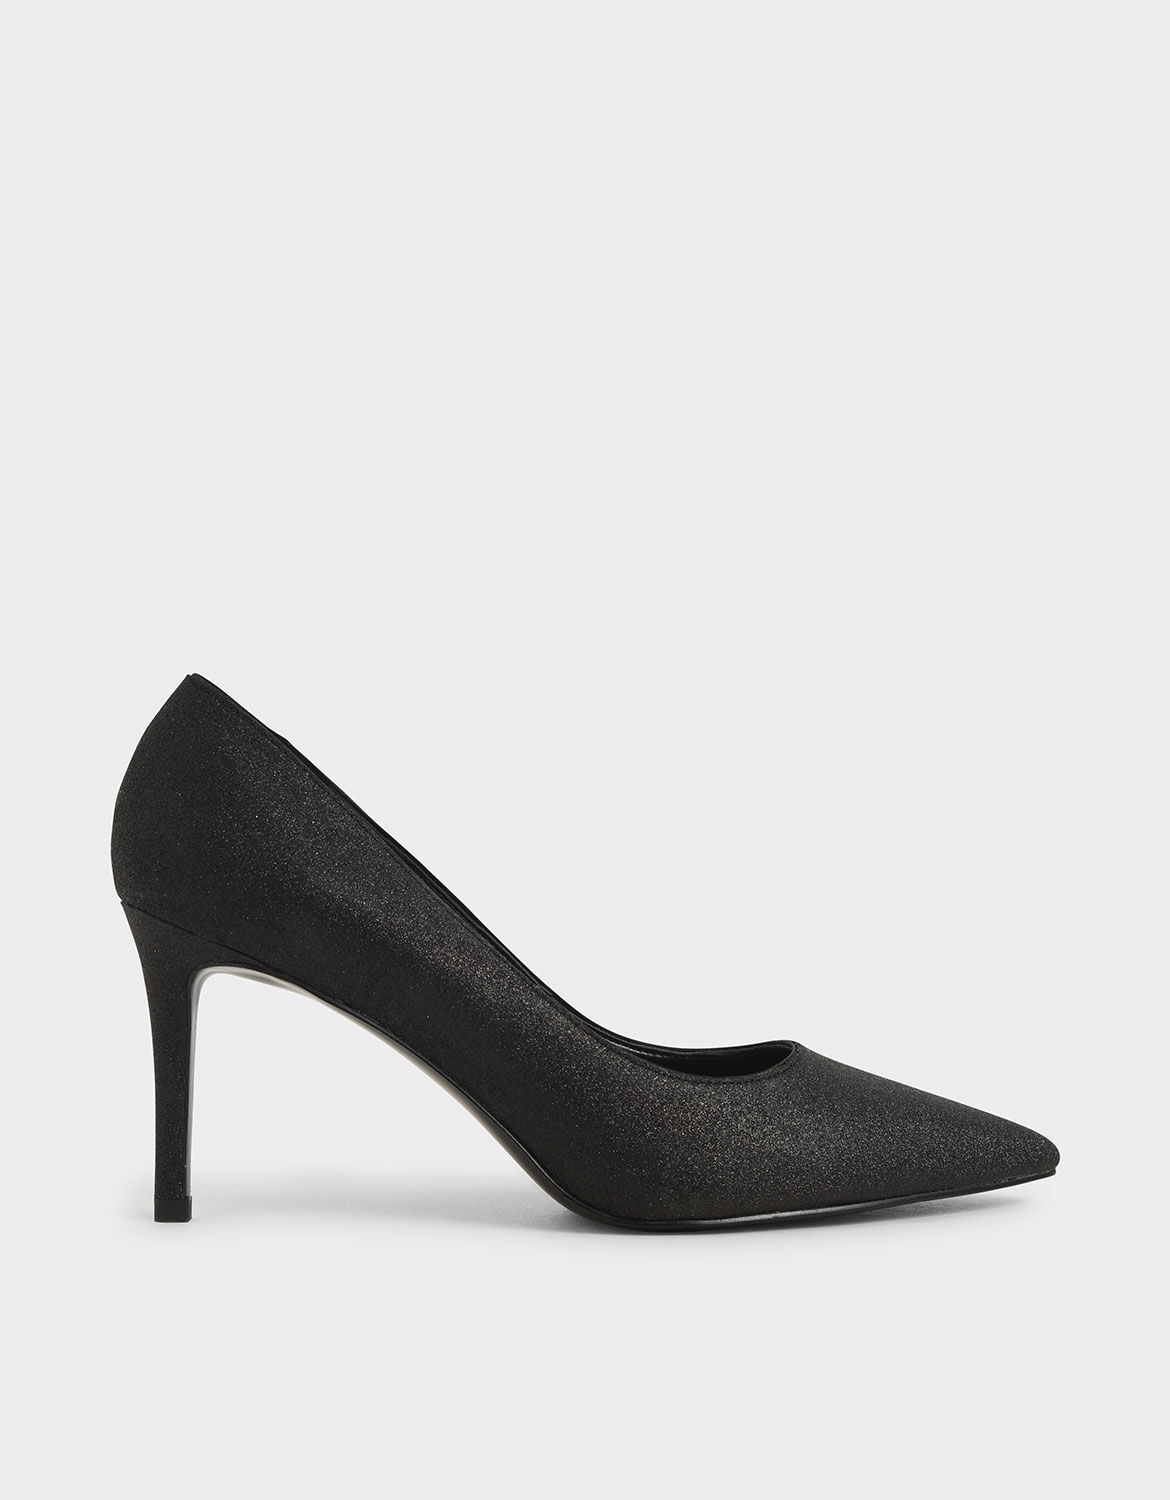 Black Glitter Pointed Toe Pumps